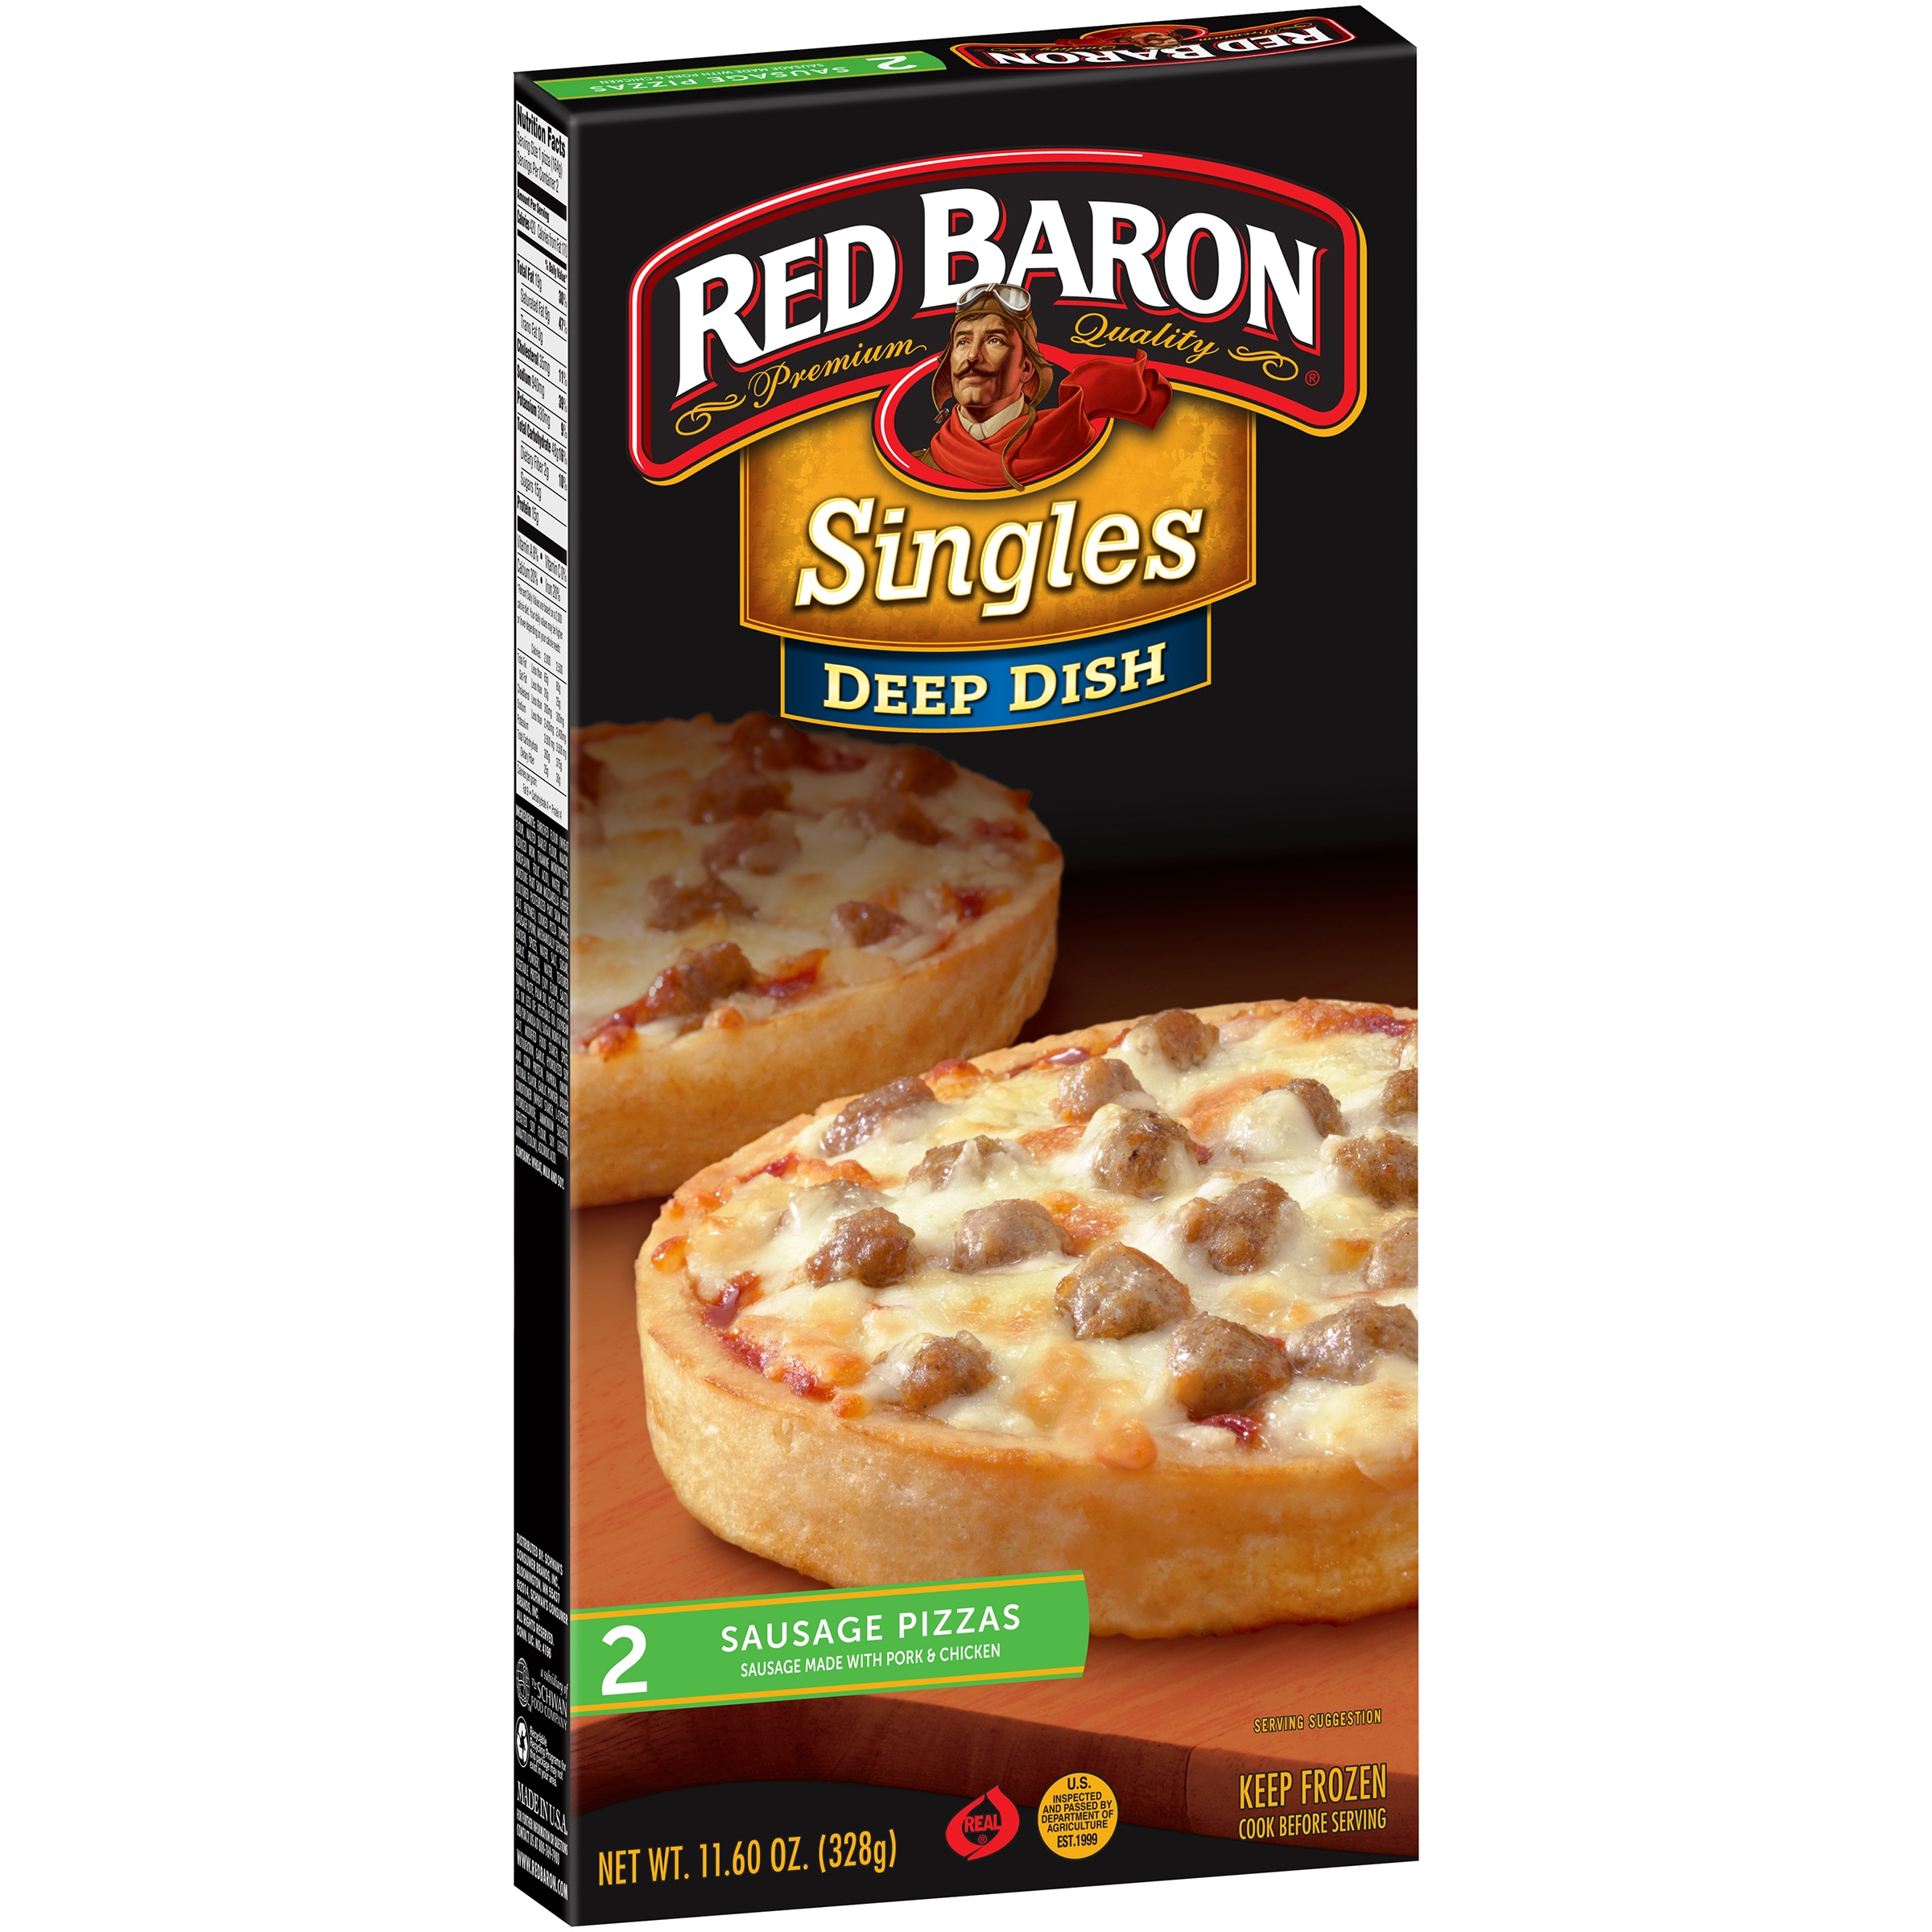 Red Baron® Singles Deep Dish Sausage Pizzas 11.60 oz. Box